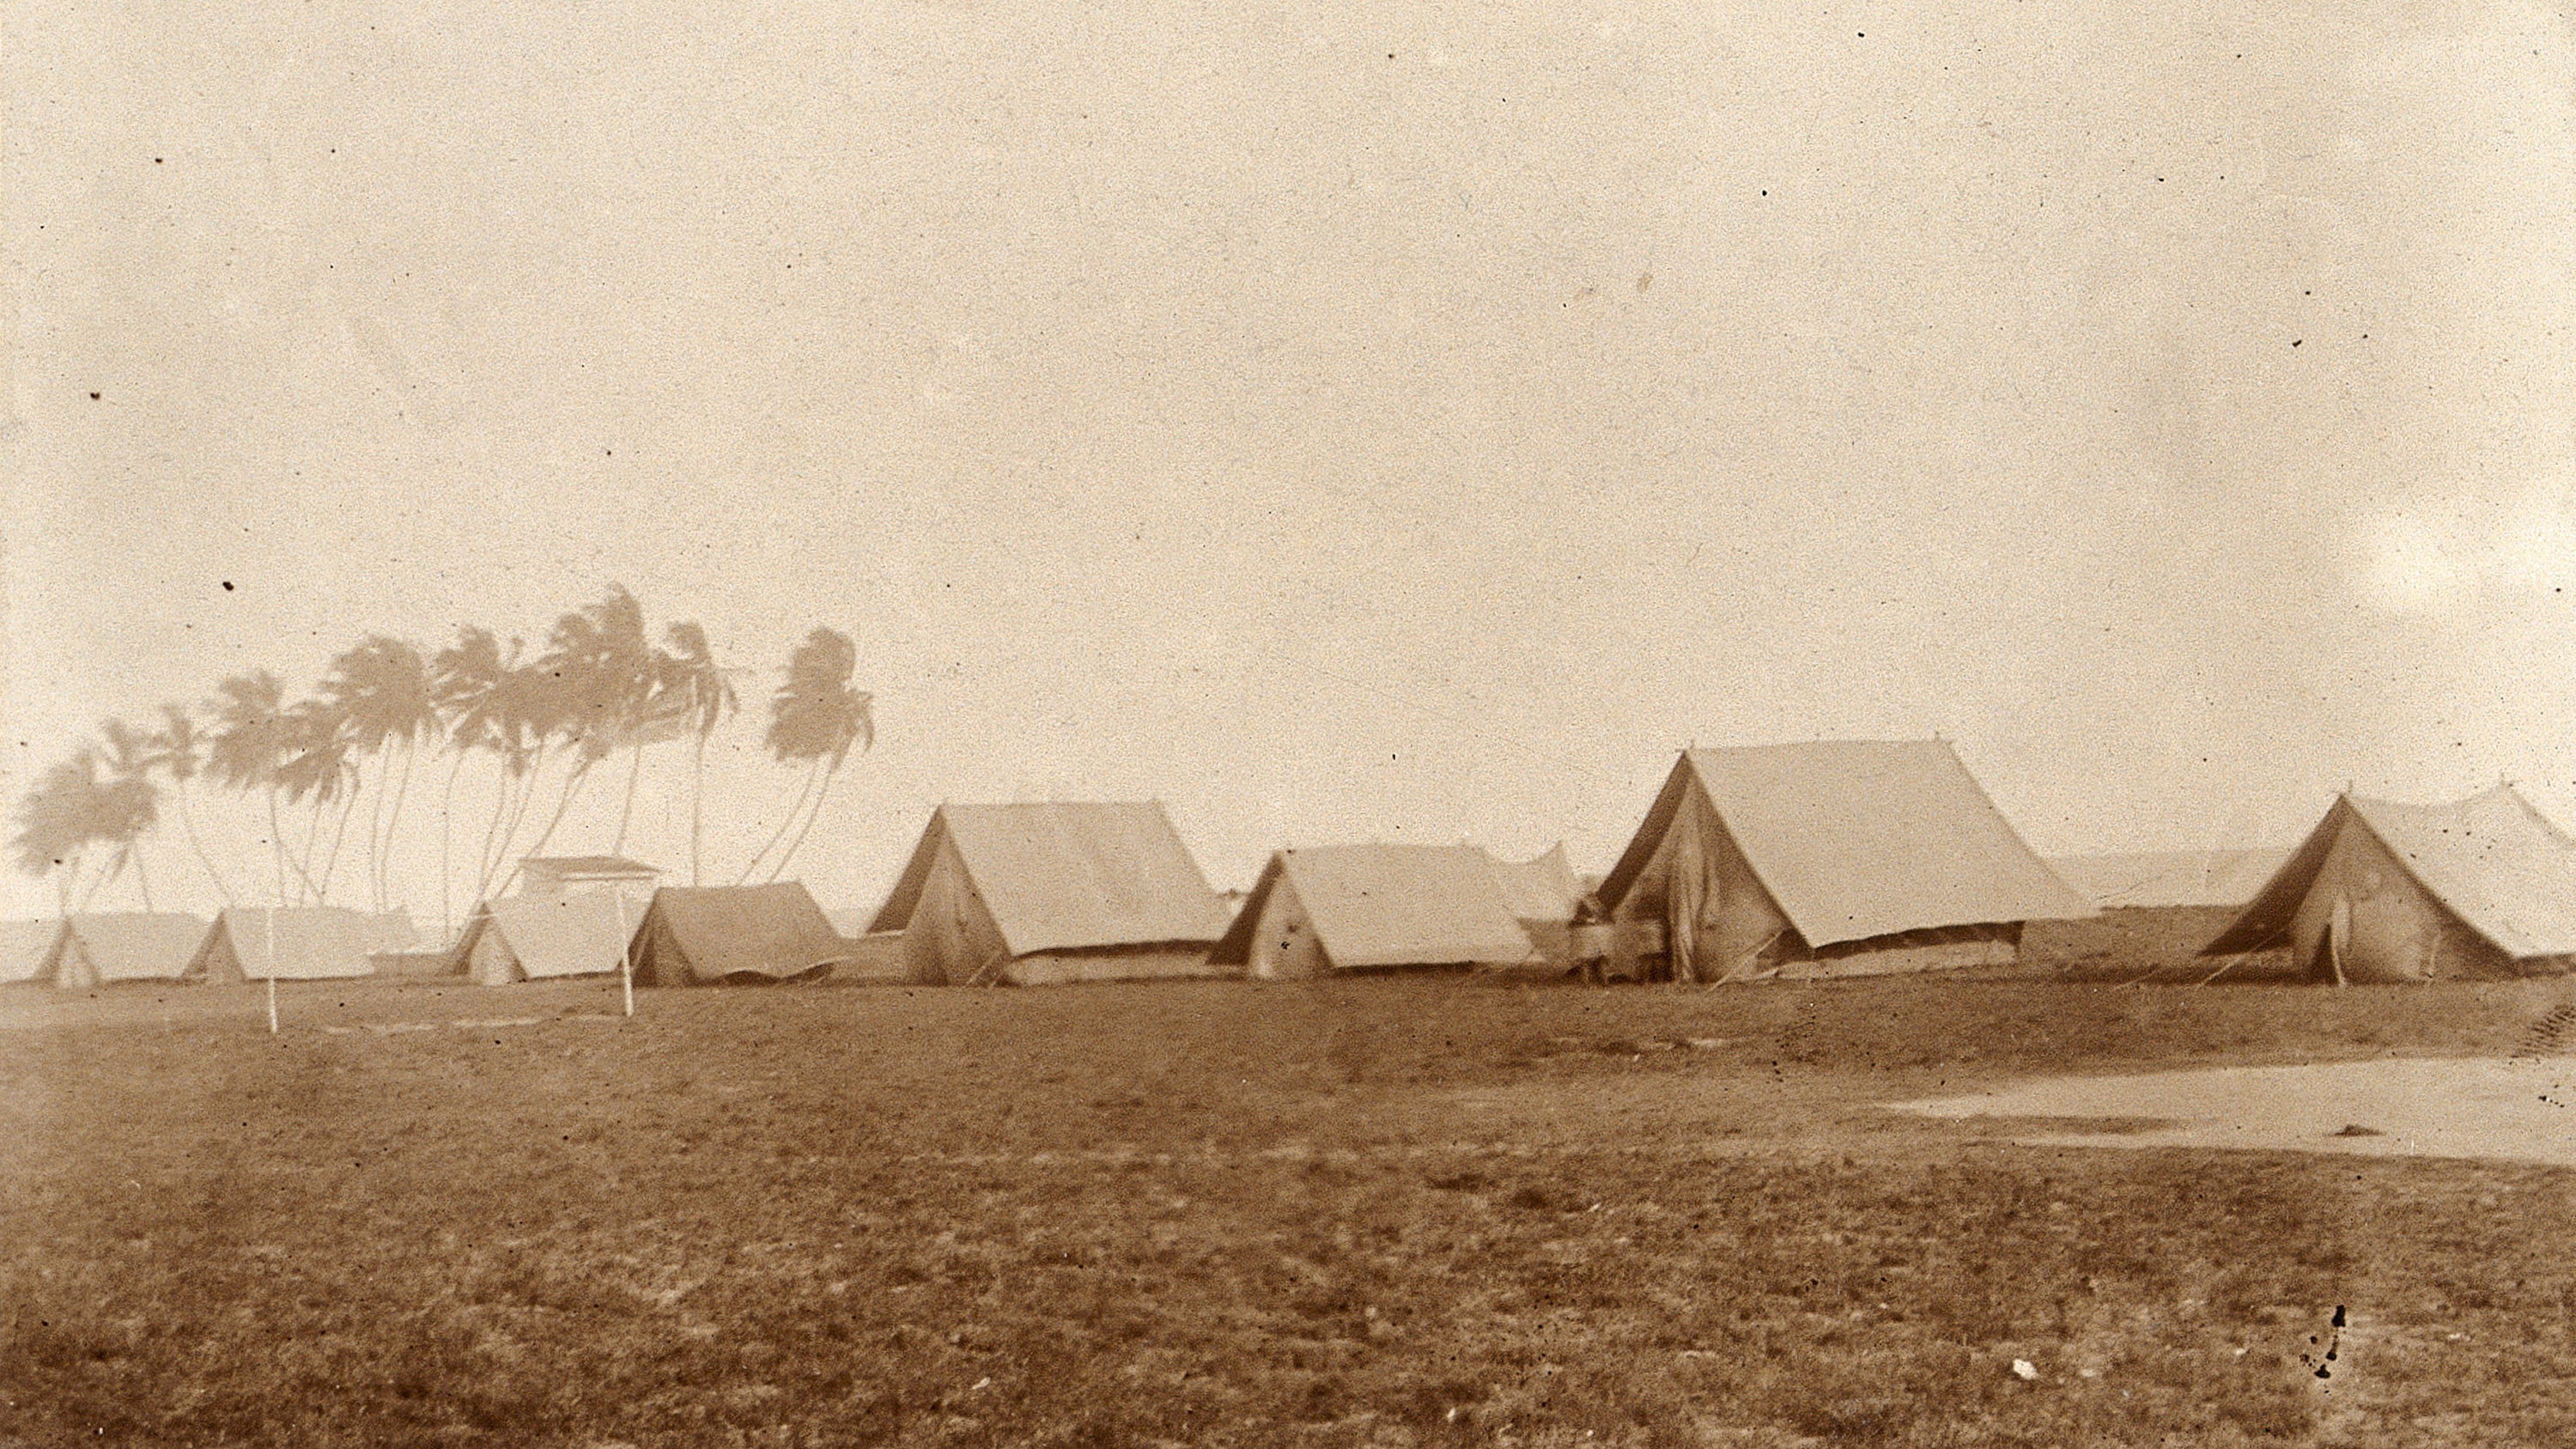 The historic black-and-white photo shows  rows of tents with palm trees to one side.